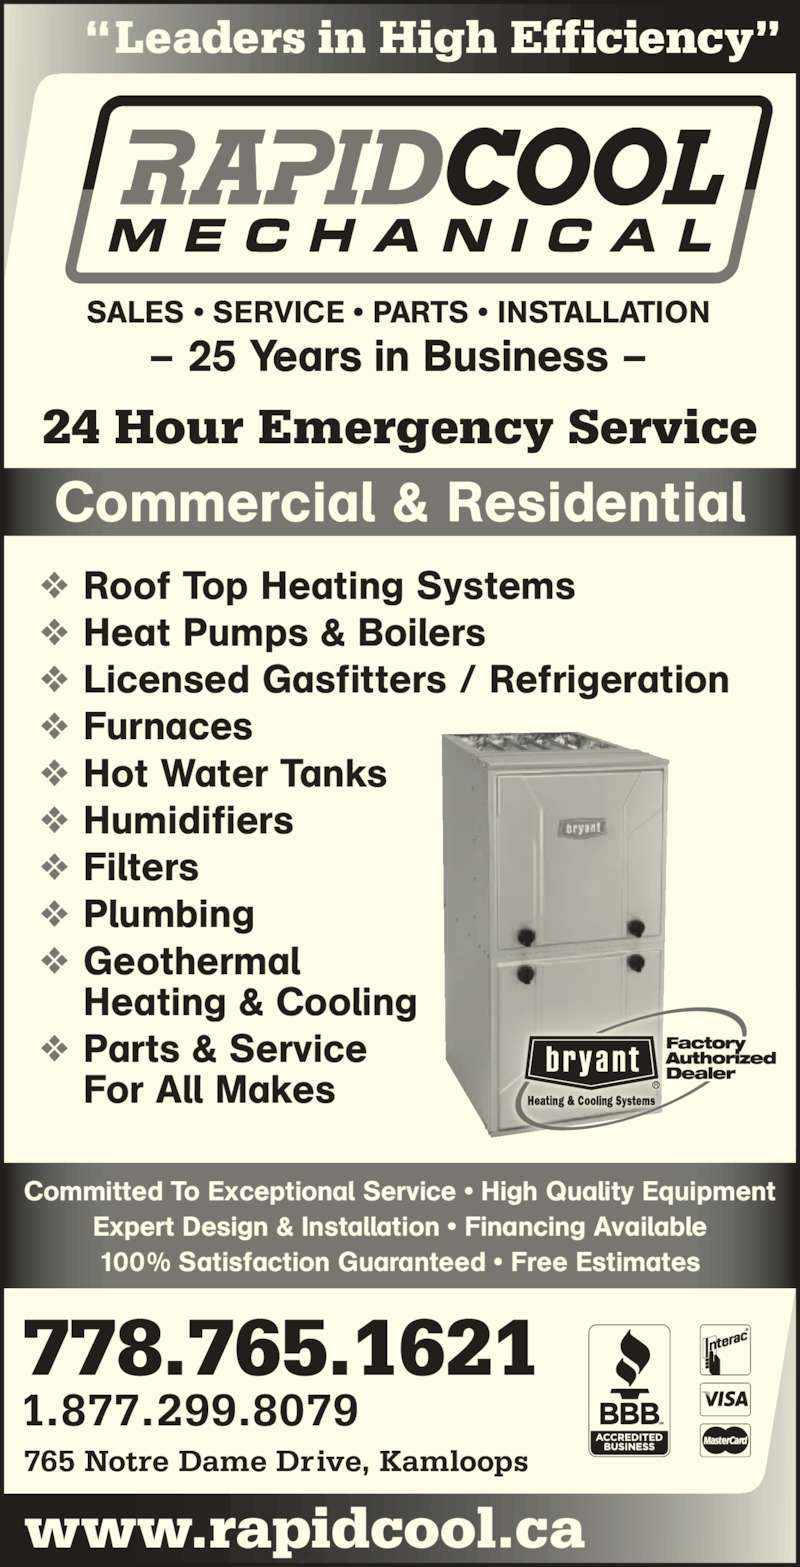 "Rapid Cool Heating & Refrigeration (250-374-6858) - Display Ad - 1.877.299.8079 778.765.1621 765 Notre Dame Drive, Kamloops SALES • SERVICE • PARTS • INSTALLATION – 25 Years in Business – Roof Top Heating Systems Heat Pumps & Boilers Licensed Gasfitters / Refrigeration Furnaces Hot Water Tanks Humidifiers Filters Plumbing Geothermal Heating & Cooling Parts & Service For All Makes Commercial & Residential ""Leaders in High Efficiency"" 24 Hour Emergency Service www.rapidcool.ca Committed To Exceptional Service • High Quality Equipment Expert Design & Installation • Financing Available 100% Satisfaction Guaranteed • Free Estimates"